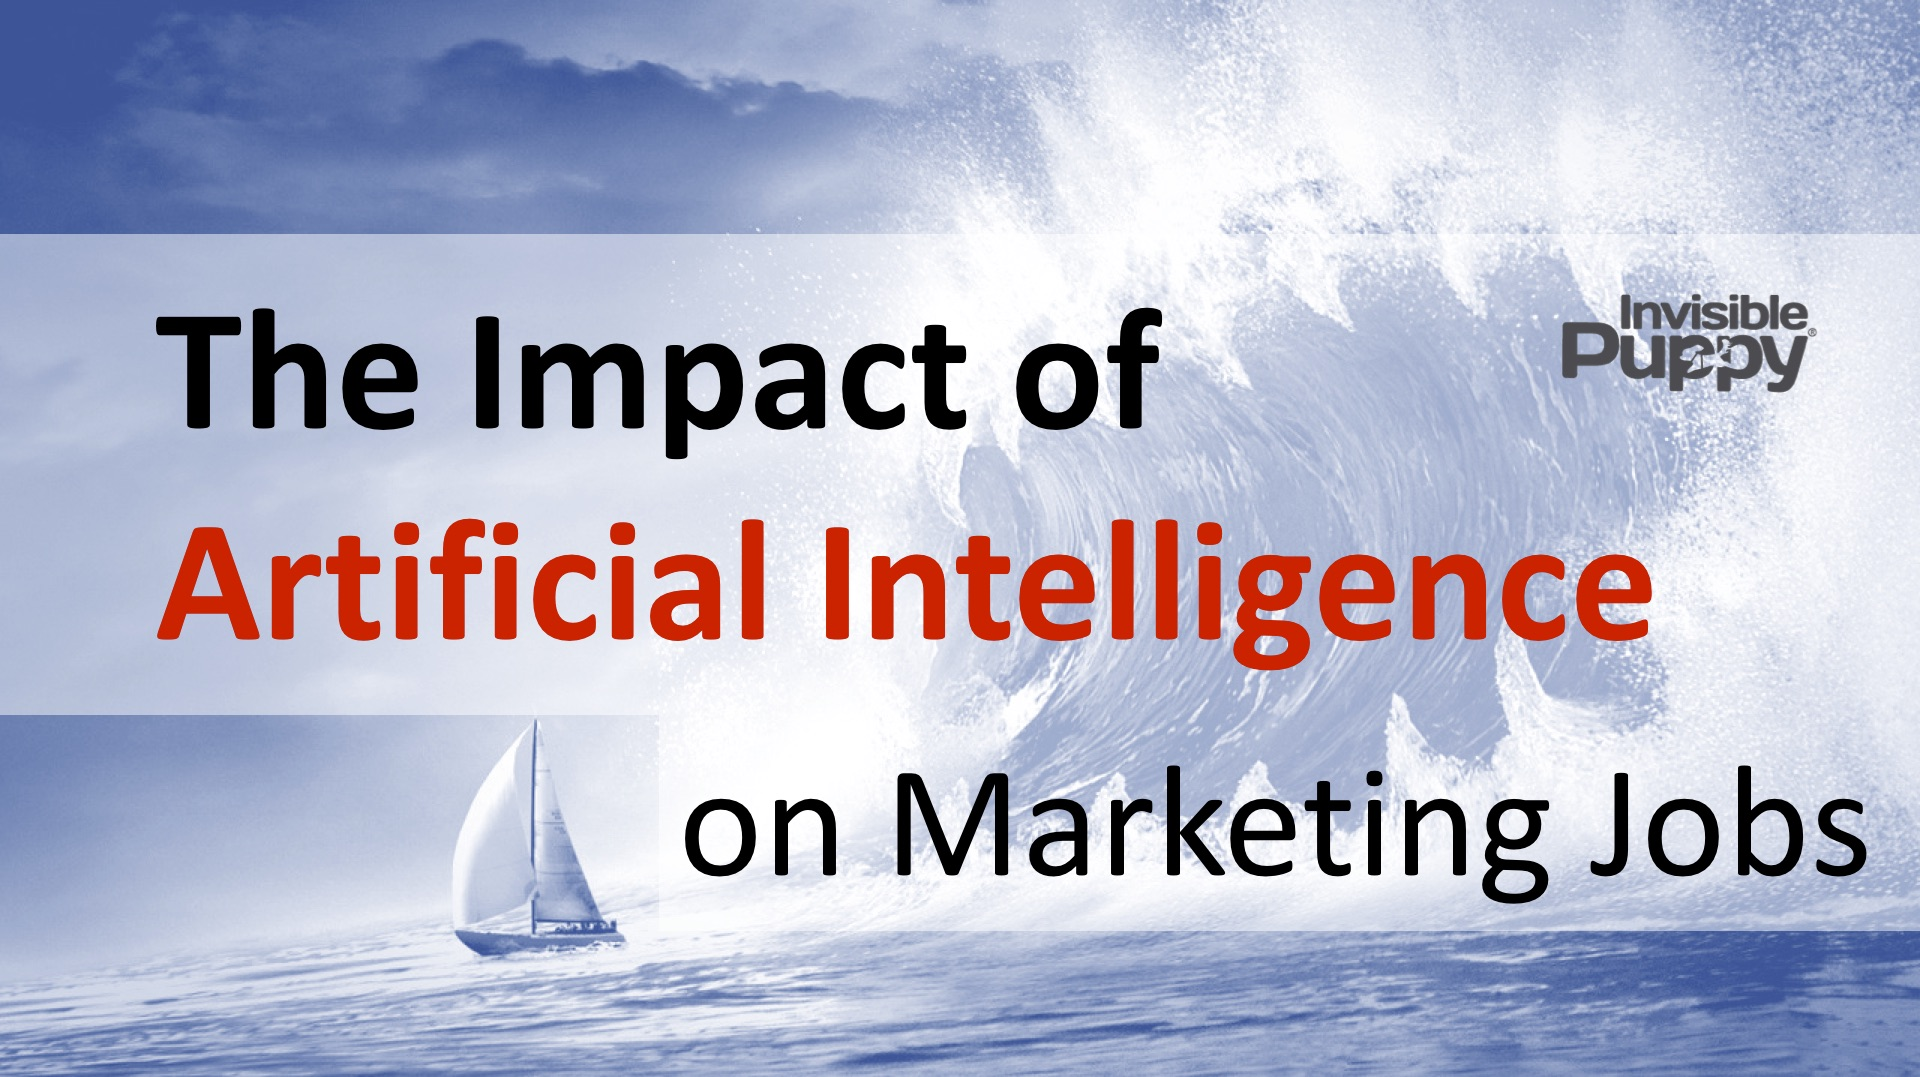 impact_artificial_intelligence_marketing_jobs